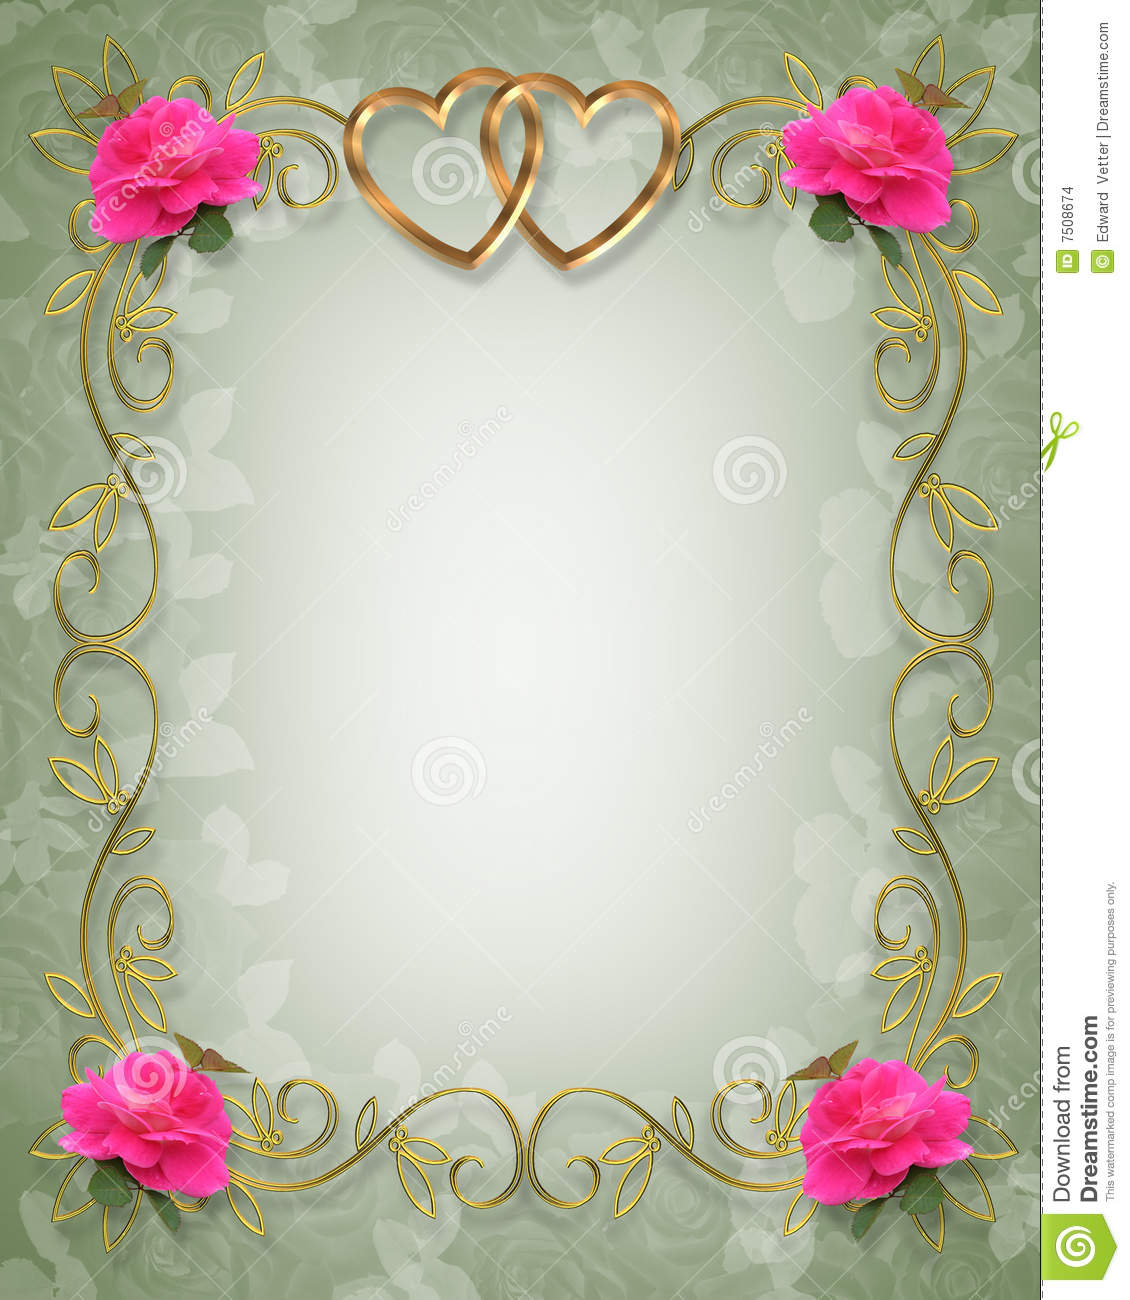 pink roses wedding border stock illustration illustration